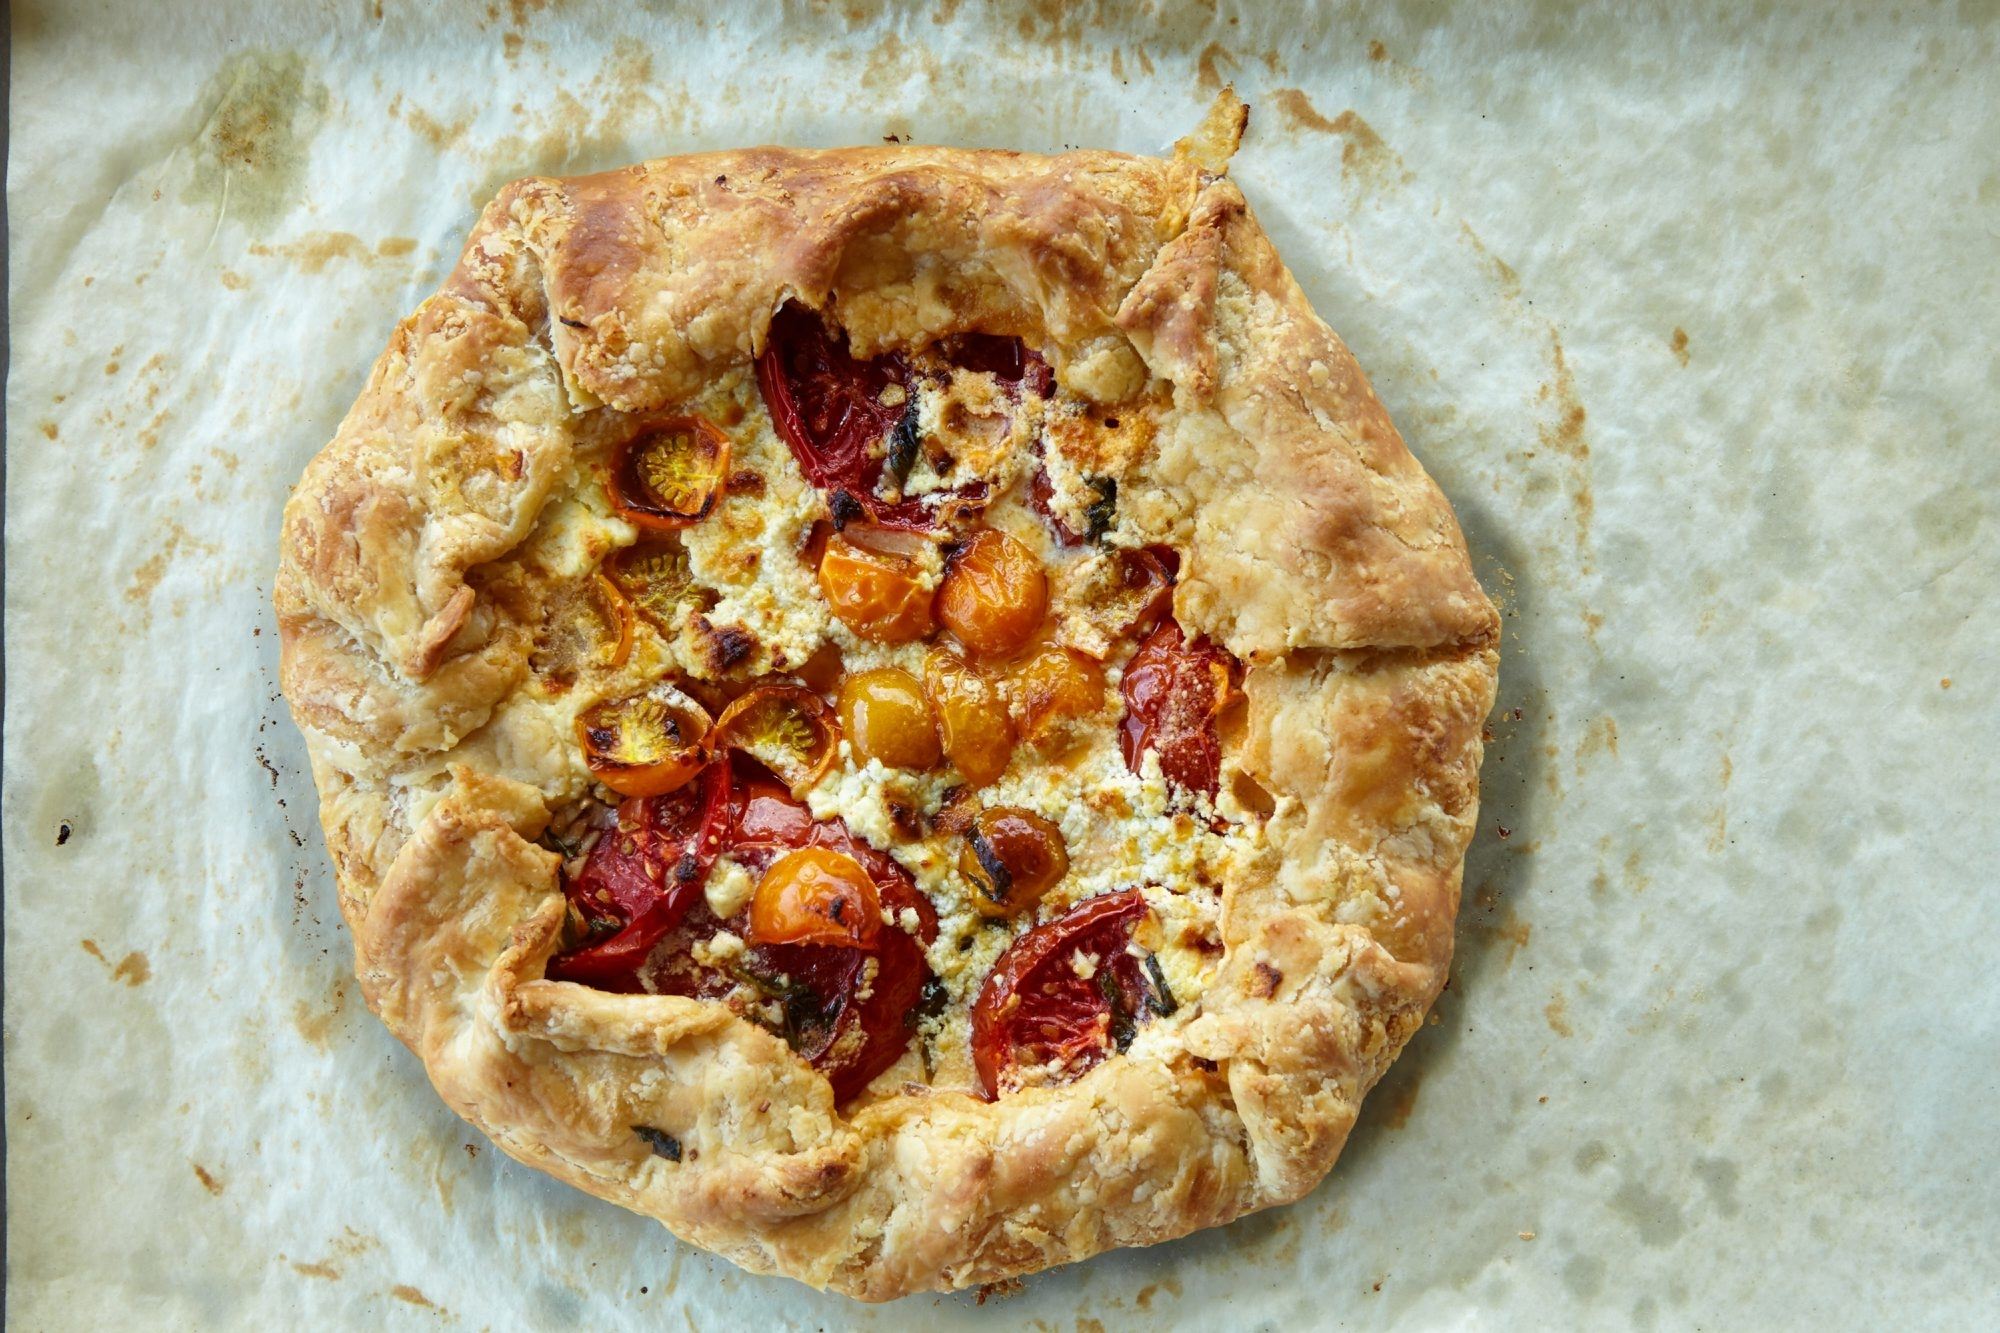 A bit of lemon juice makes a tender crust for this Rustic Heirloom Tomato Crostata.